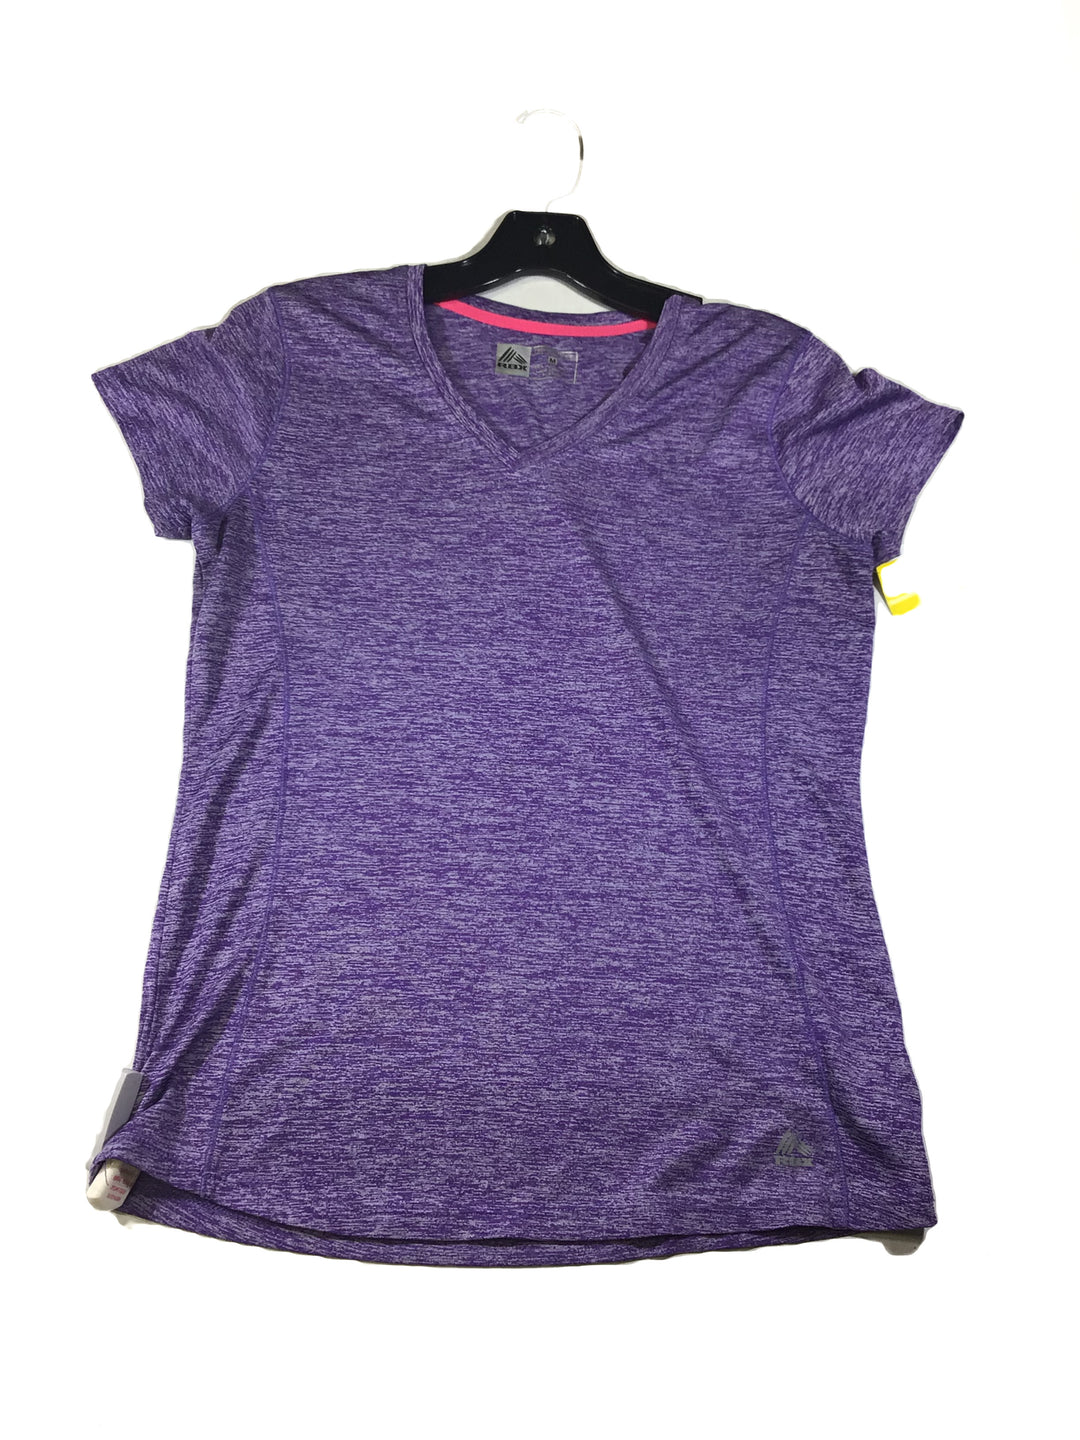 Primary Photo - BRAND: RBX <BR>STYLE: ATHLETIC TOP SHORT SLEEVE <BR>COLOR: PURPLE <BR>SIZE: M <BR>SKU: 213-213143-6939